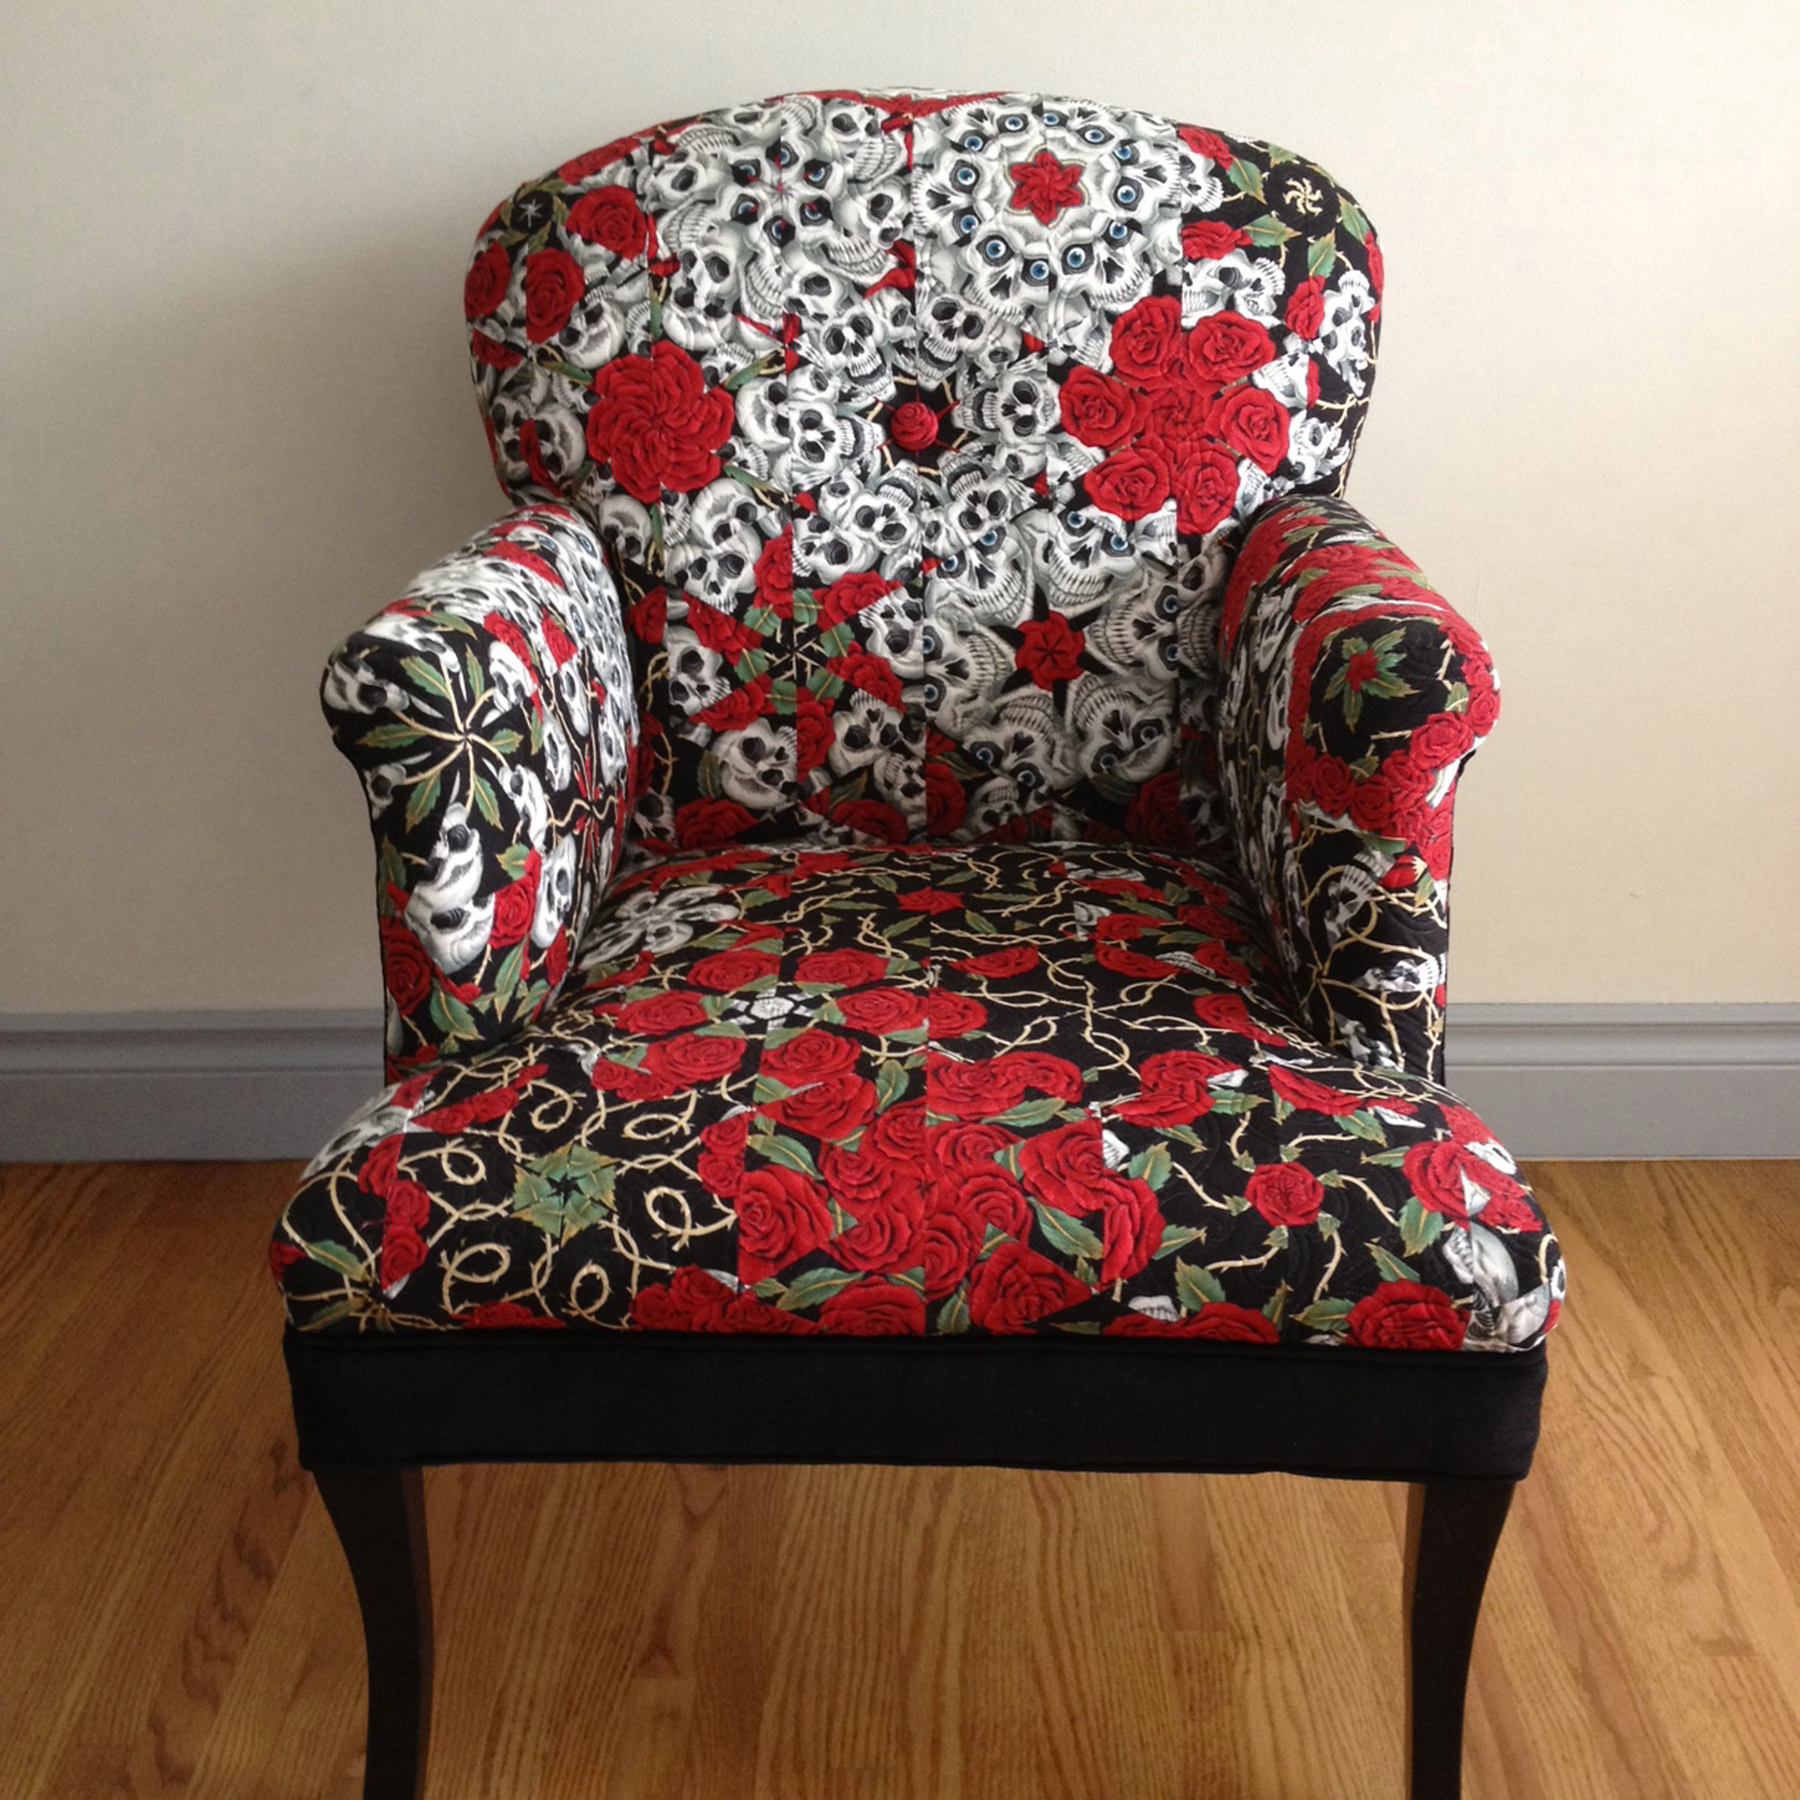 Chair - I had this idea to re-upholster a chair with a One-Block-Wonder quilt design. If you look closely you can see the surprise in the pattern.Learn my process by reading my blog post.